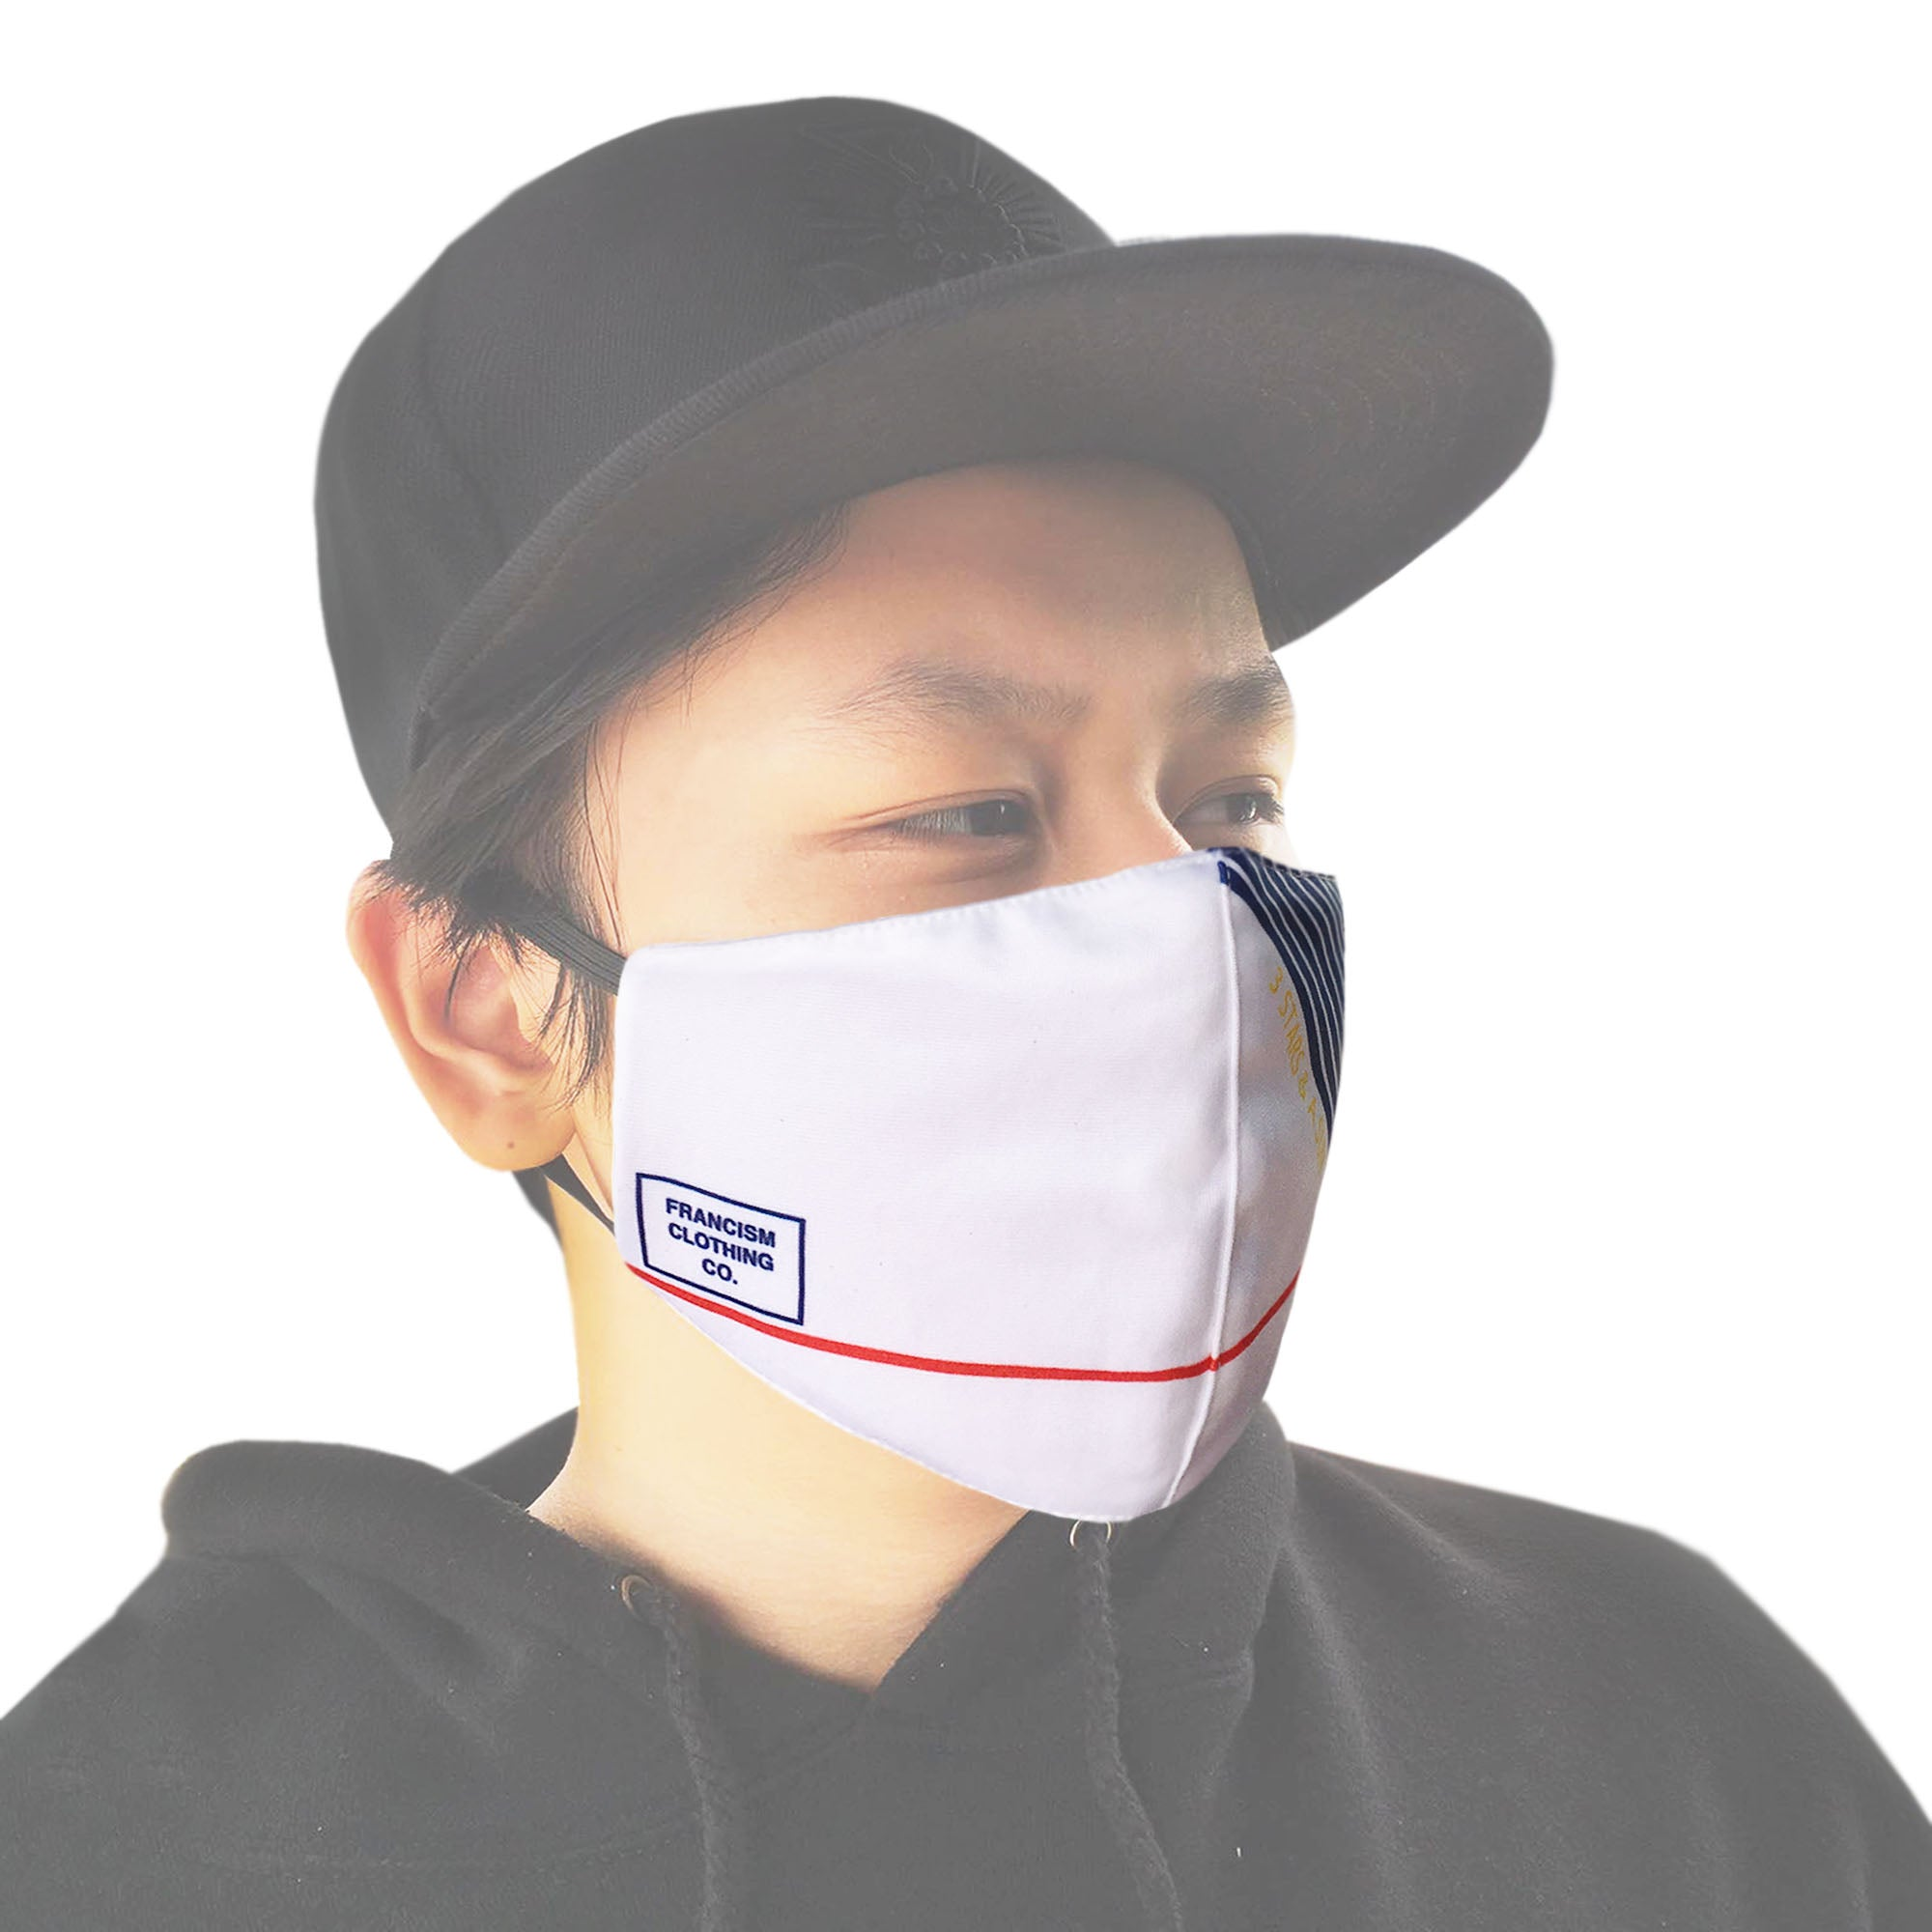 FRANCISM FACE MASK LINEAR WHITE